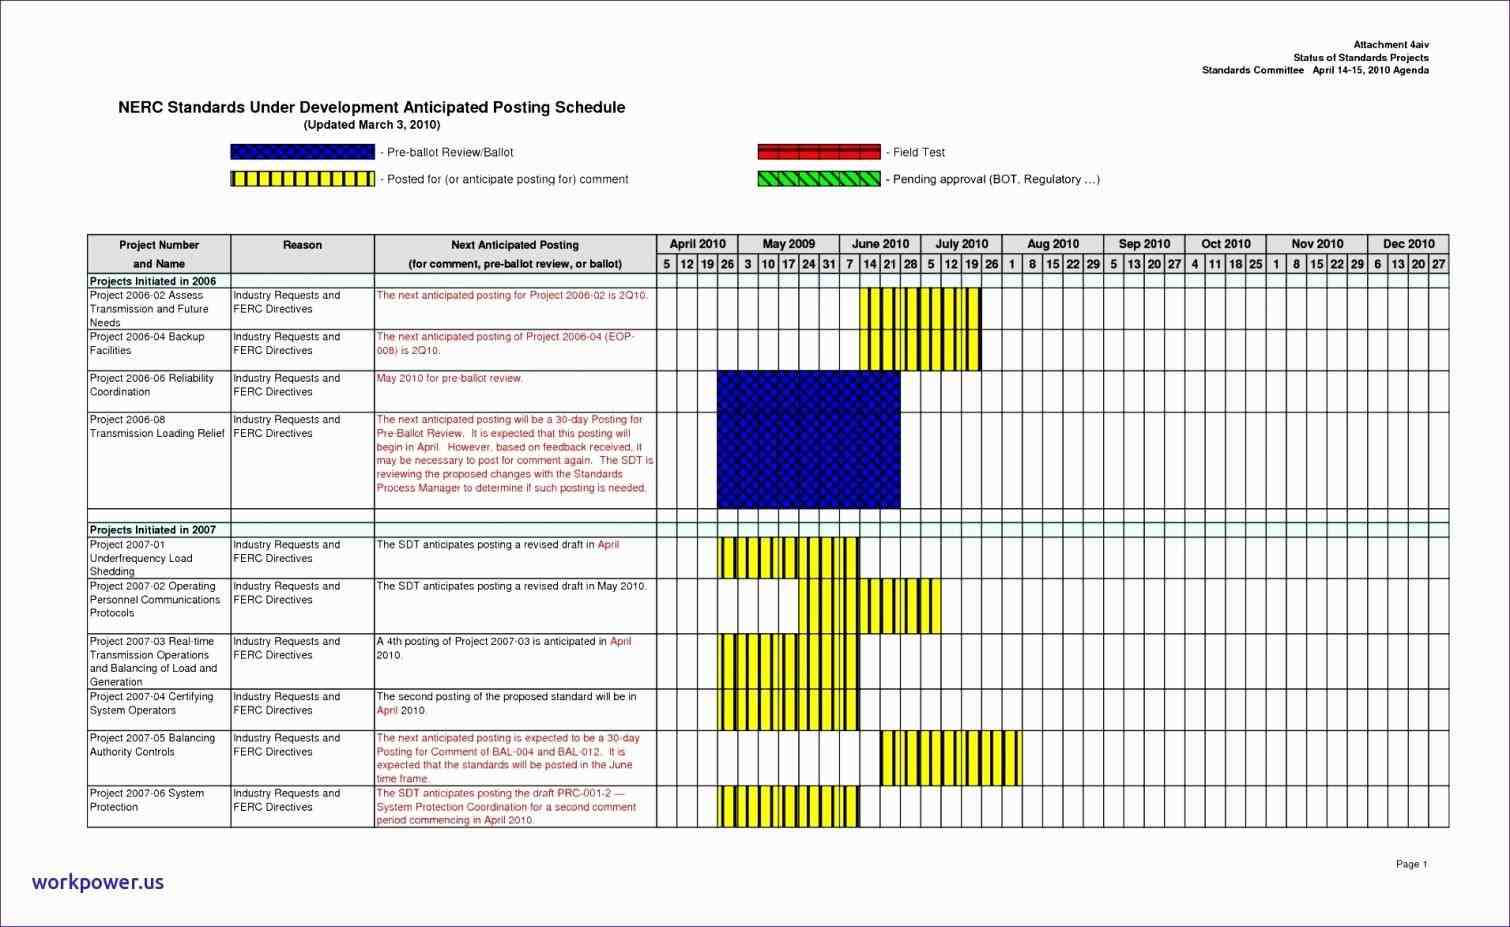 for macrheasybusinessfinancenet download c program excel rhkukkoblockcom download Simple Gantt Chart Template Excel Download gantt chart c program excel template rhkukkoblockcom